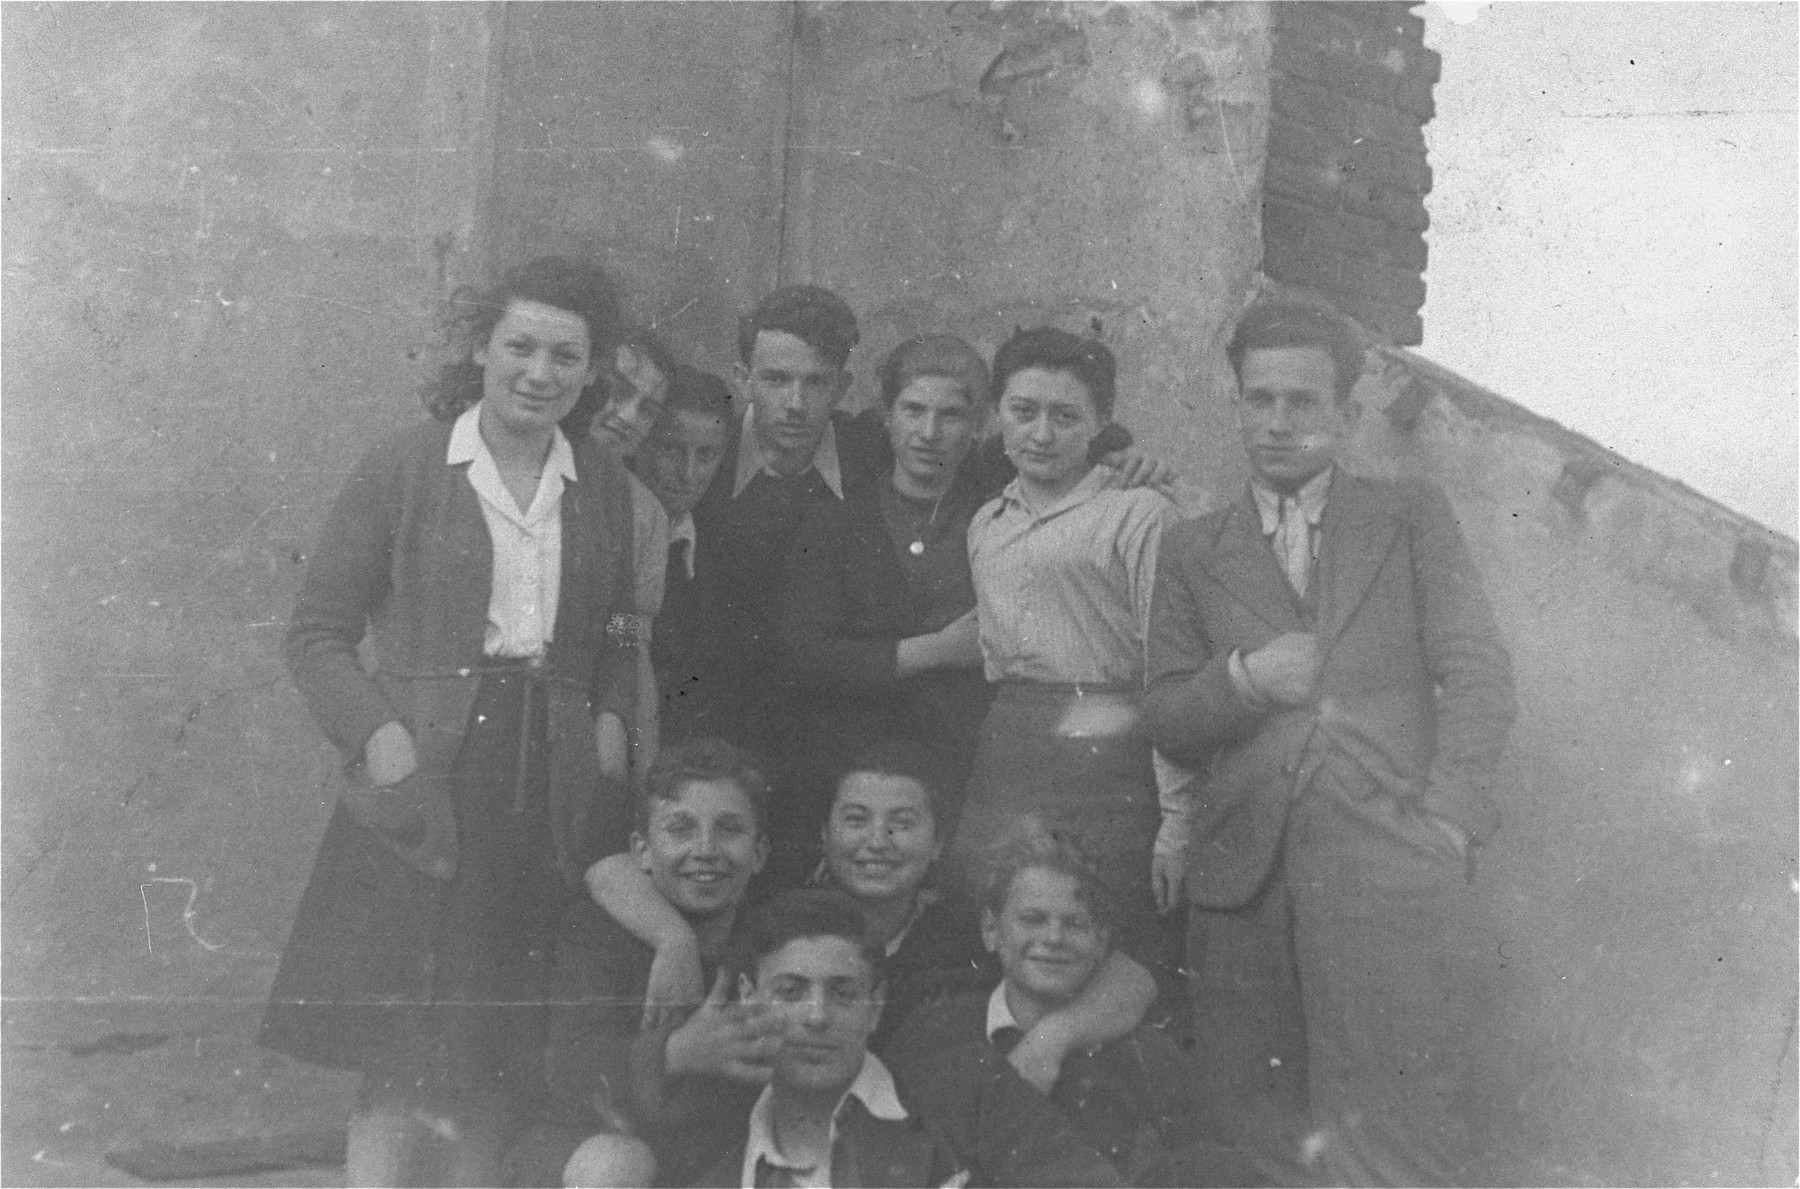 Group portrait of Jewish survivors who are members of a kibbutz hachshara located at 38 Poznanska Street in Warsaw.    Among those pictured are: Uta Wargon Grajek (standing at the left) and Israel Szklar (standing in the center).